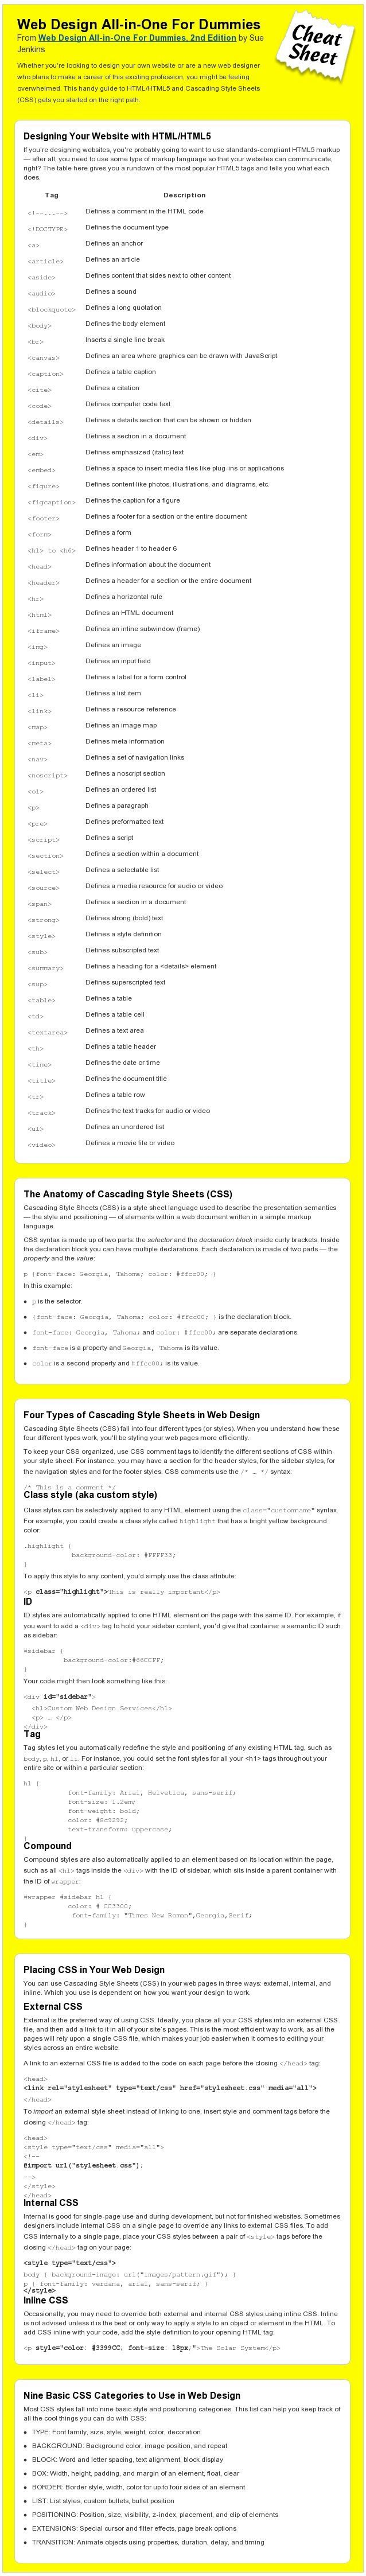 CSS Cheat Sheet for Dummies